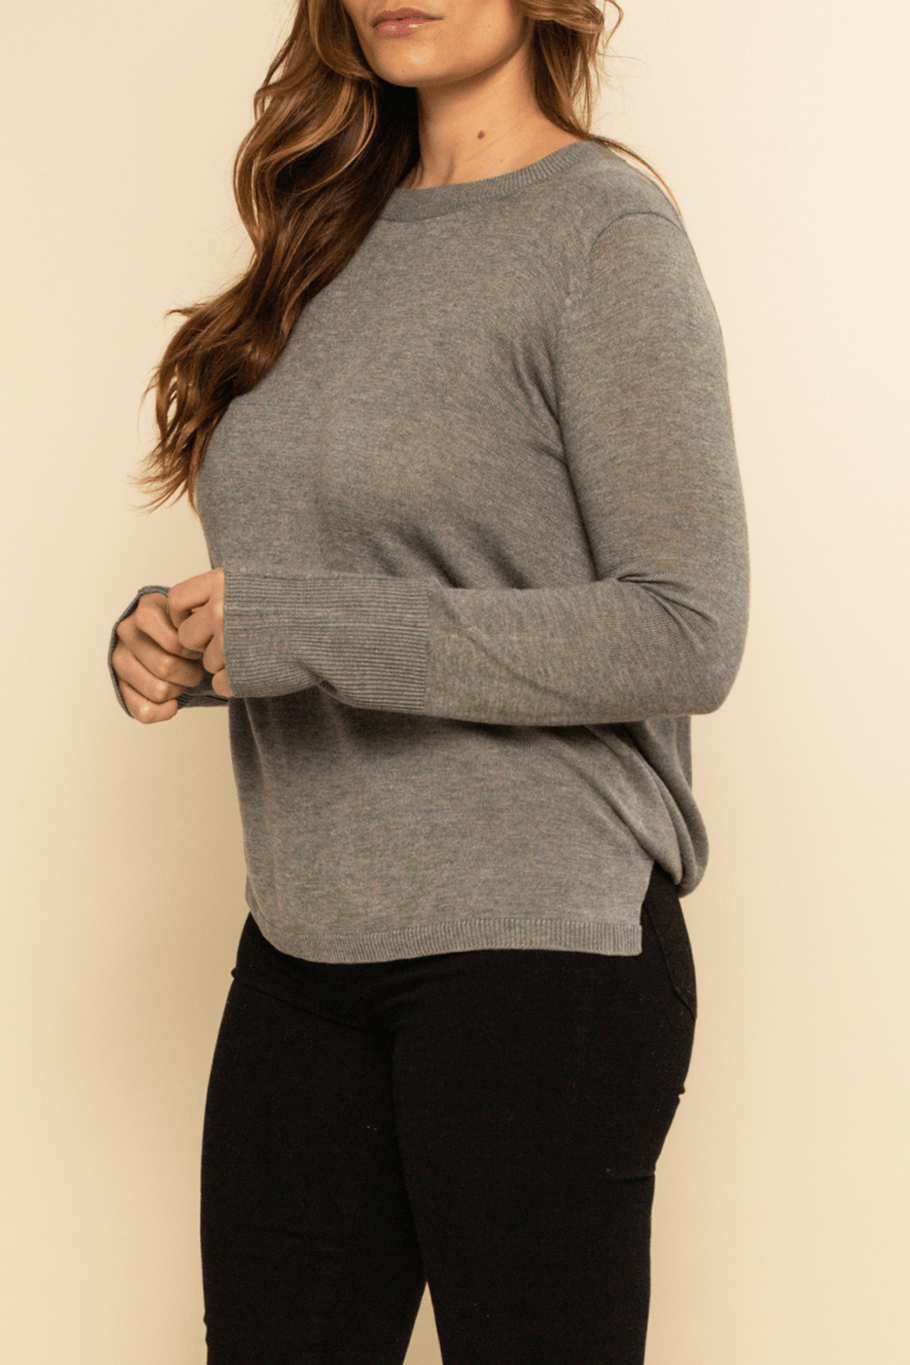 Jackson Hole Sweater - Grey - Shore